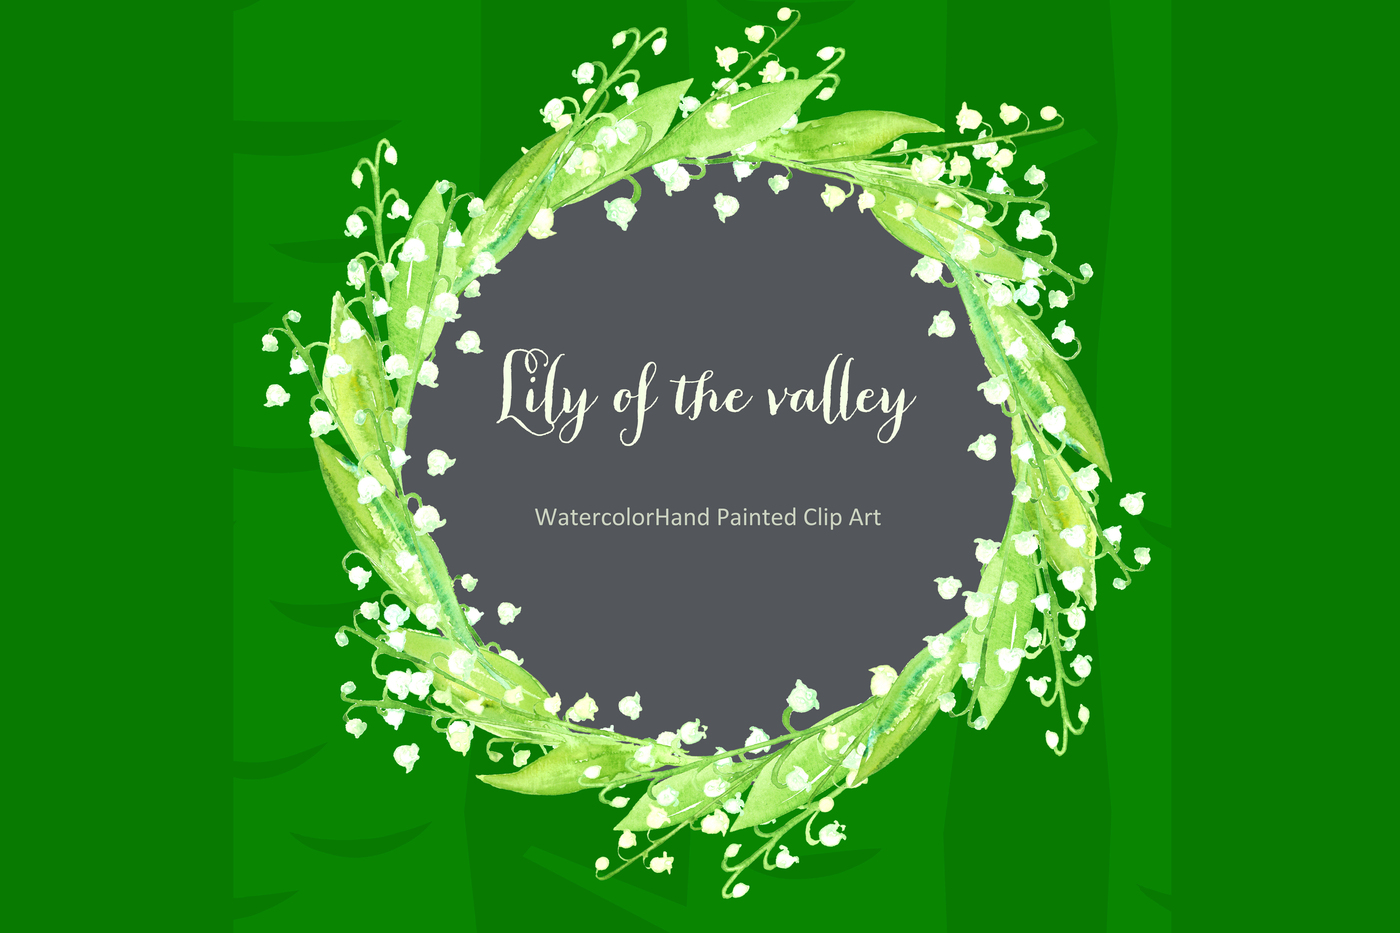 Lily of the valley. watercolor clipart by LABFcreations.